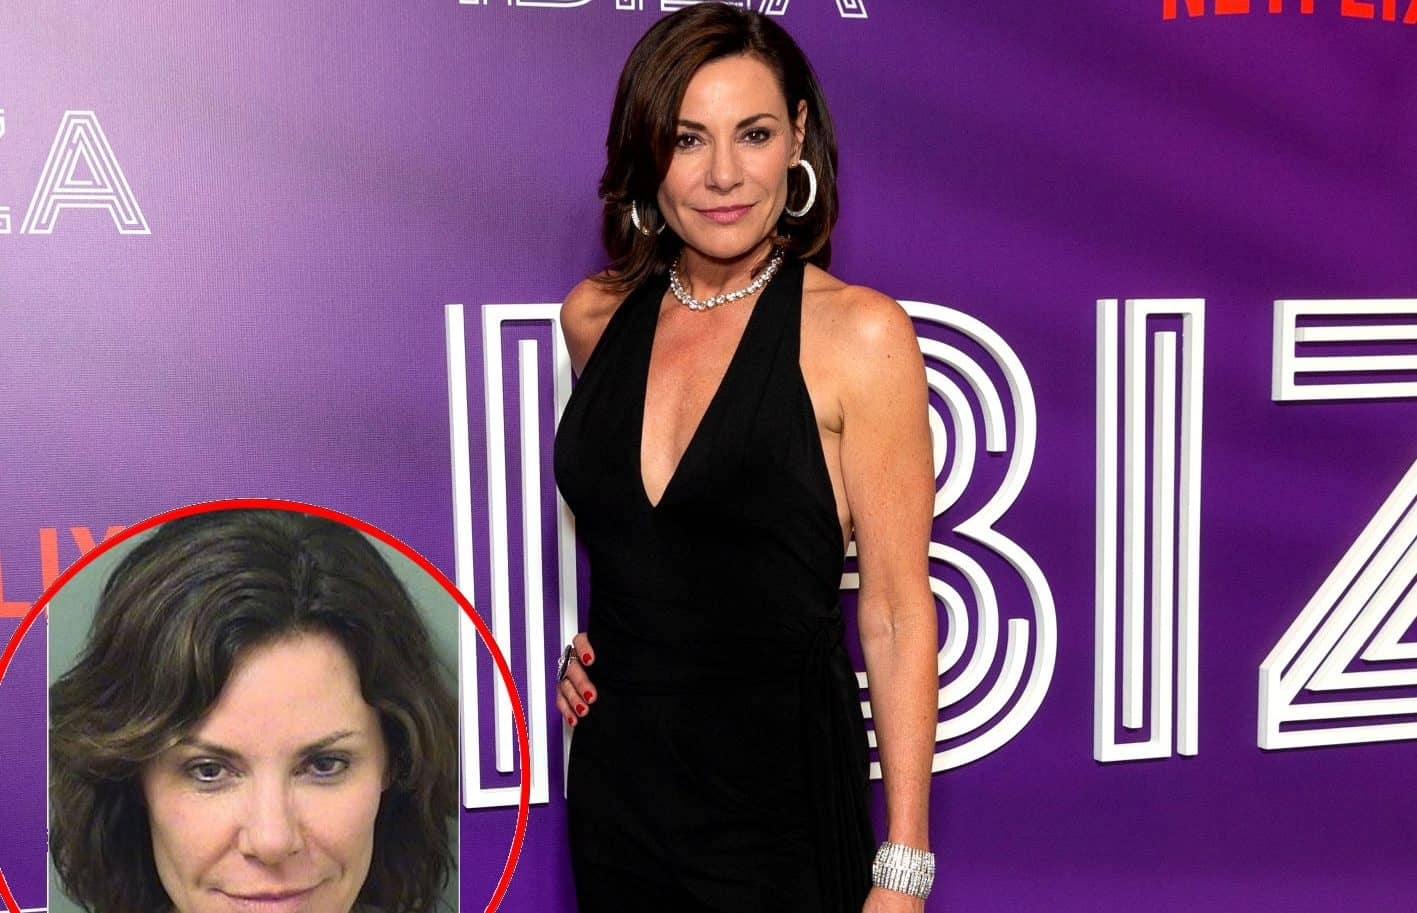 RHONY Luann de Lesseps Plea Deal and Sobriety Interview